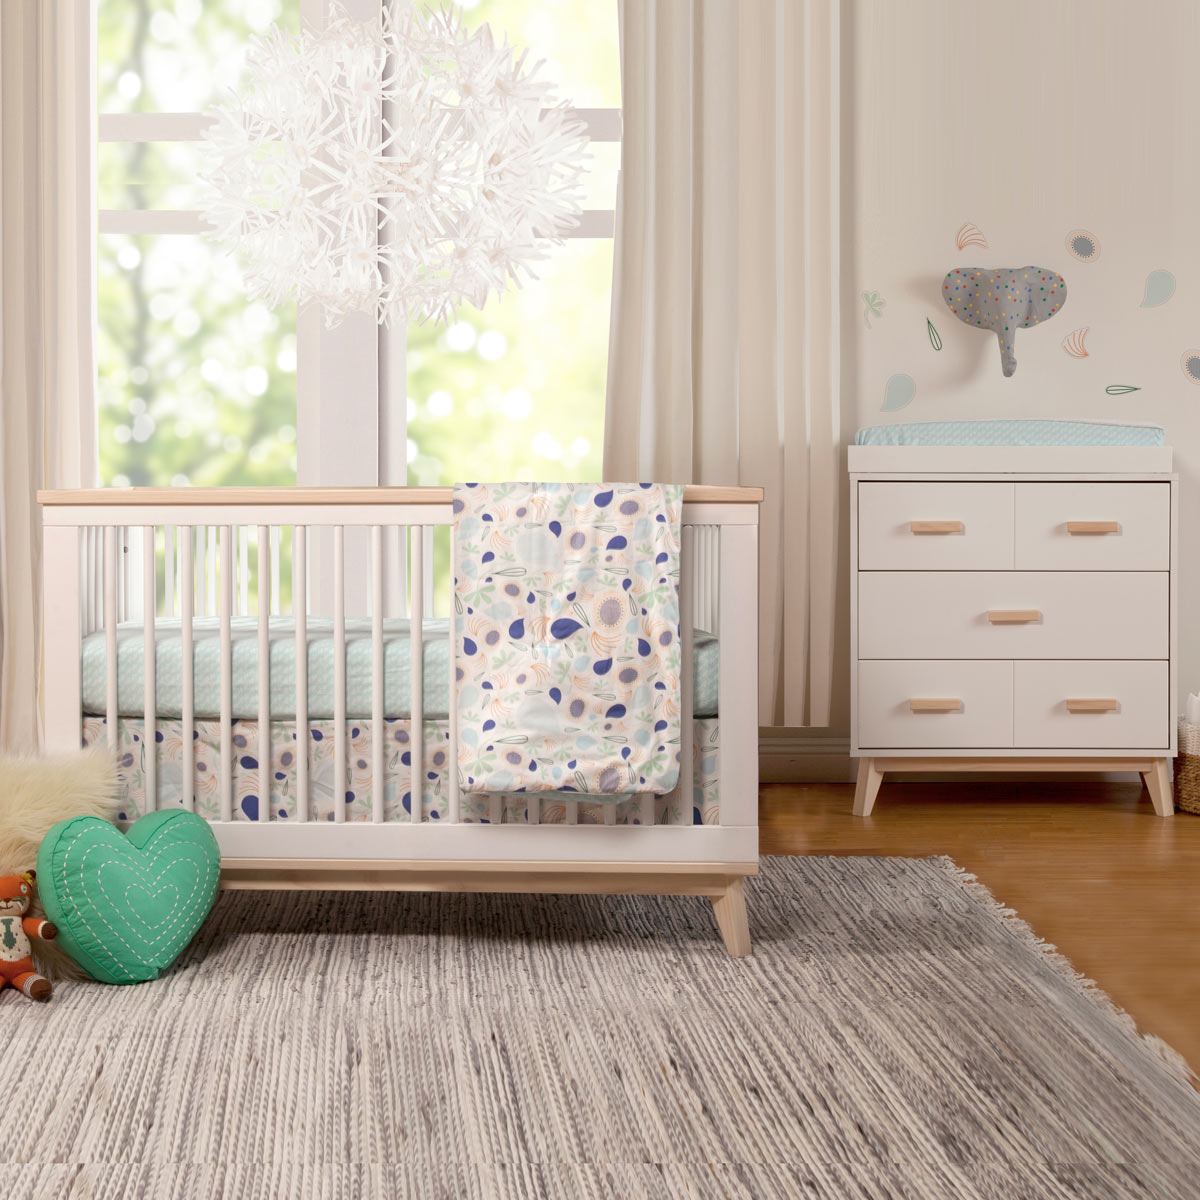 Babyletto 2 piece nursery set scoot 3 in 1 convertible crib and dresser changer in white natural free shipping